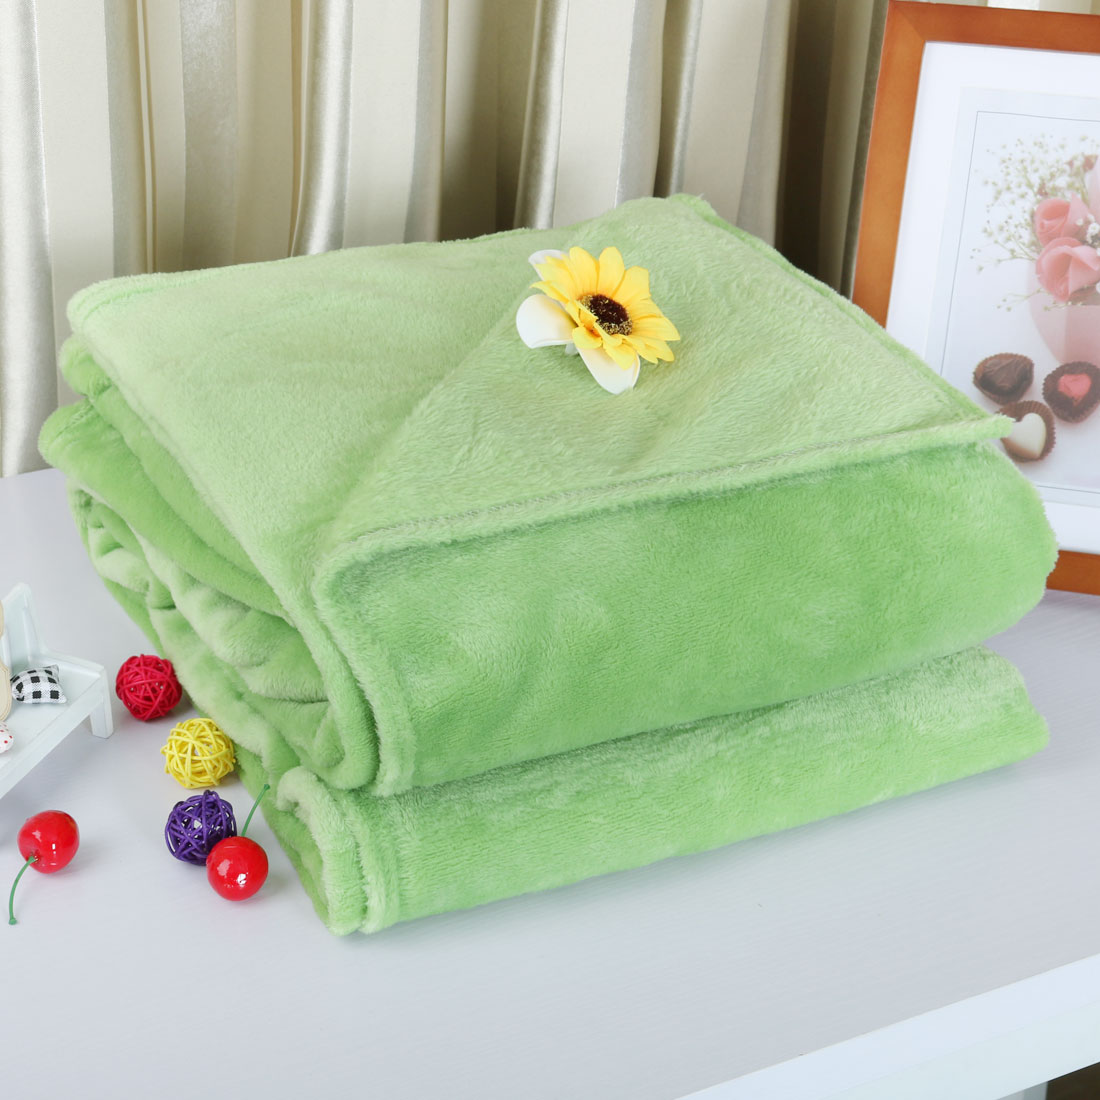 UXCELL Piccocasa 1.5 X 2M Twin Size Home Bedroom Bed Sofa Warm Plush Couch  Throws Blanket Soft Lime Green